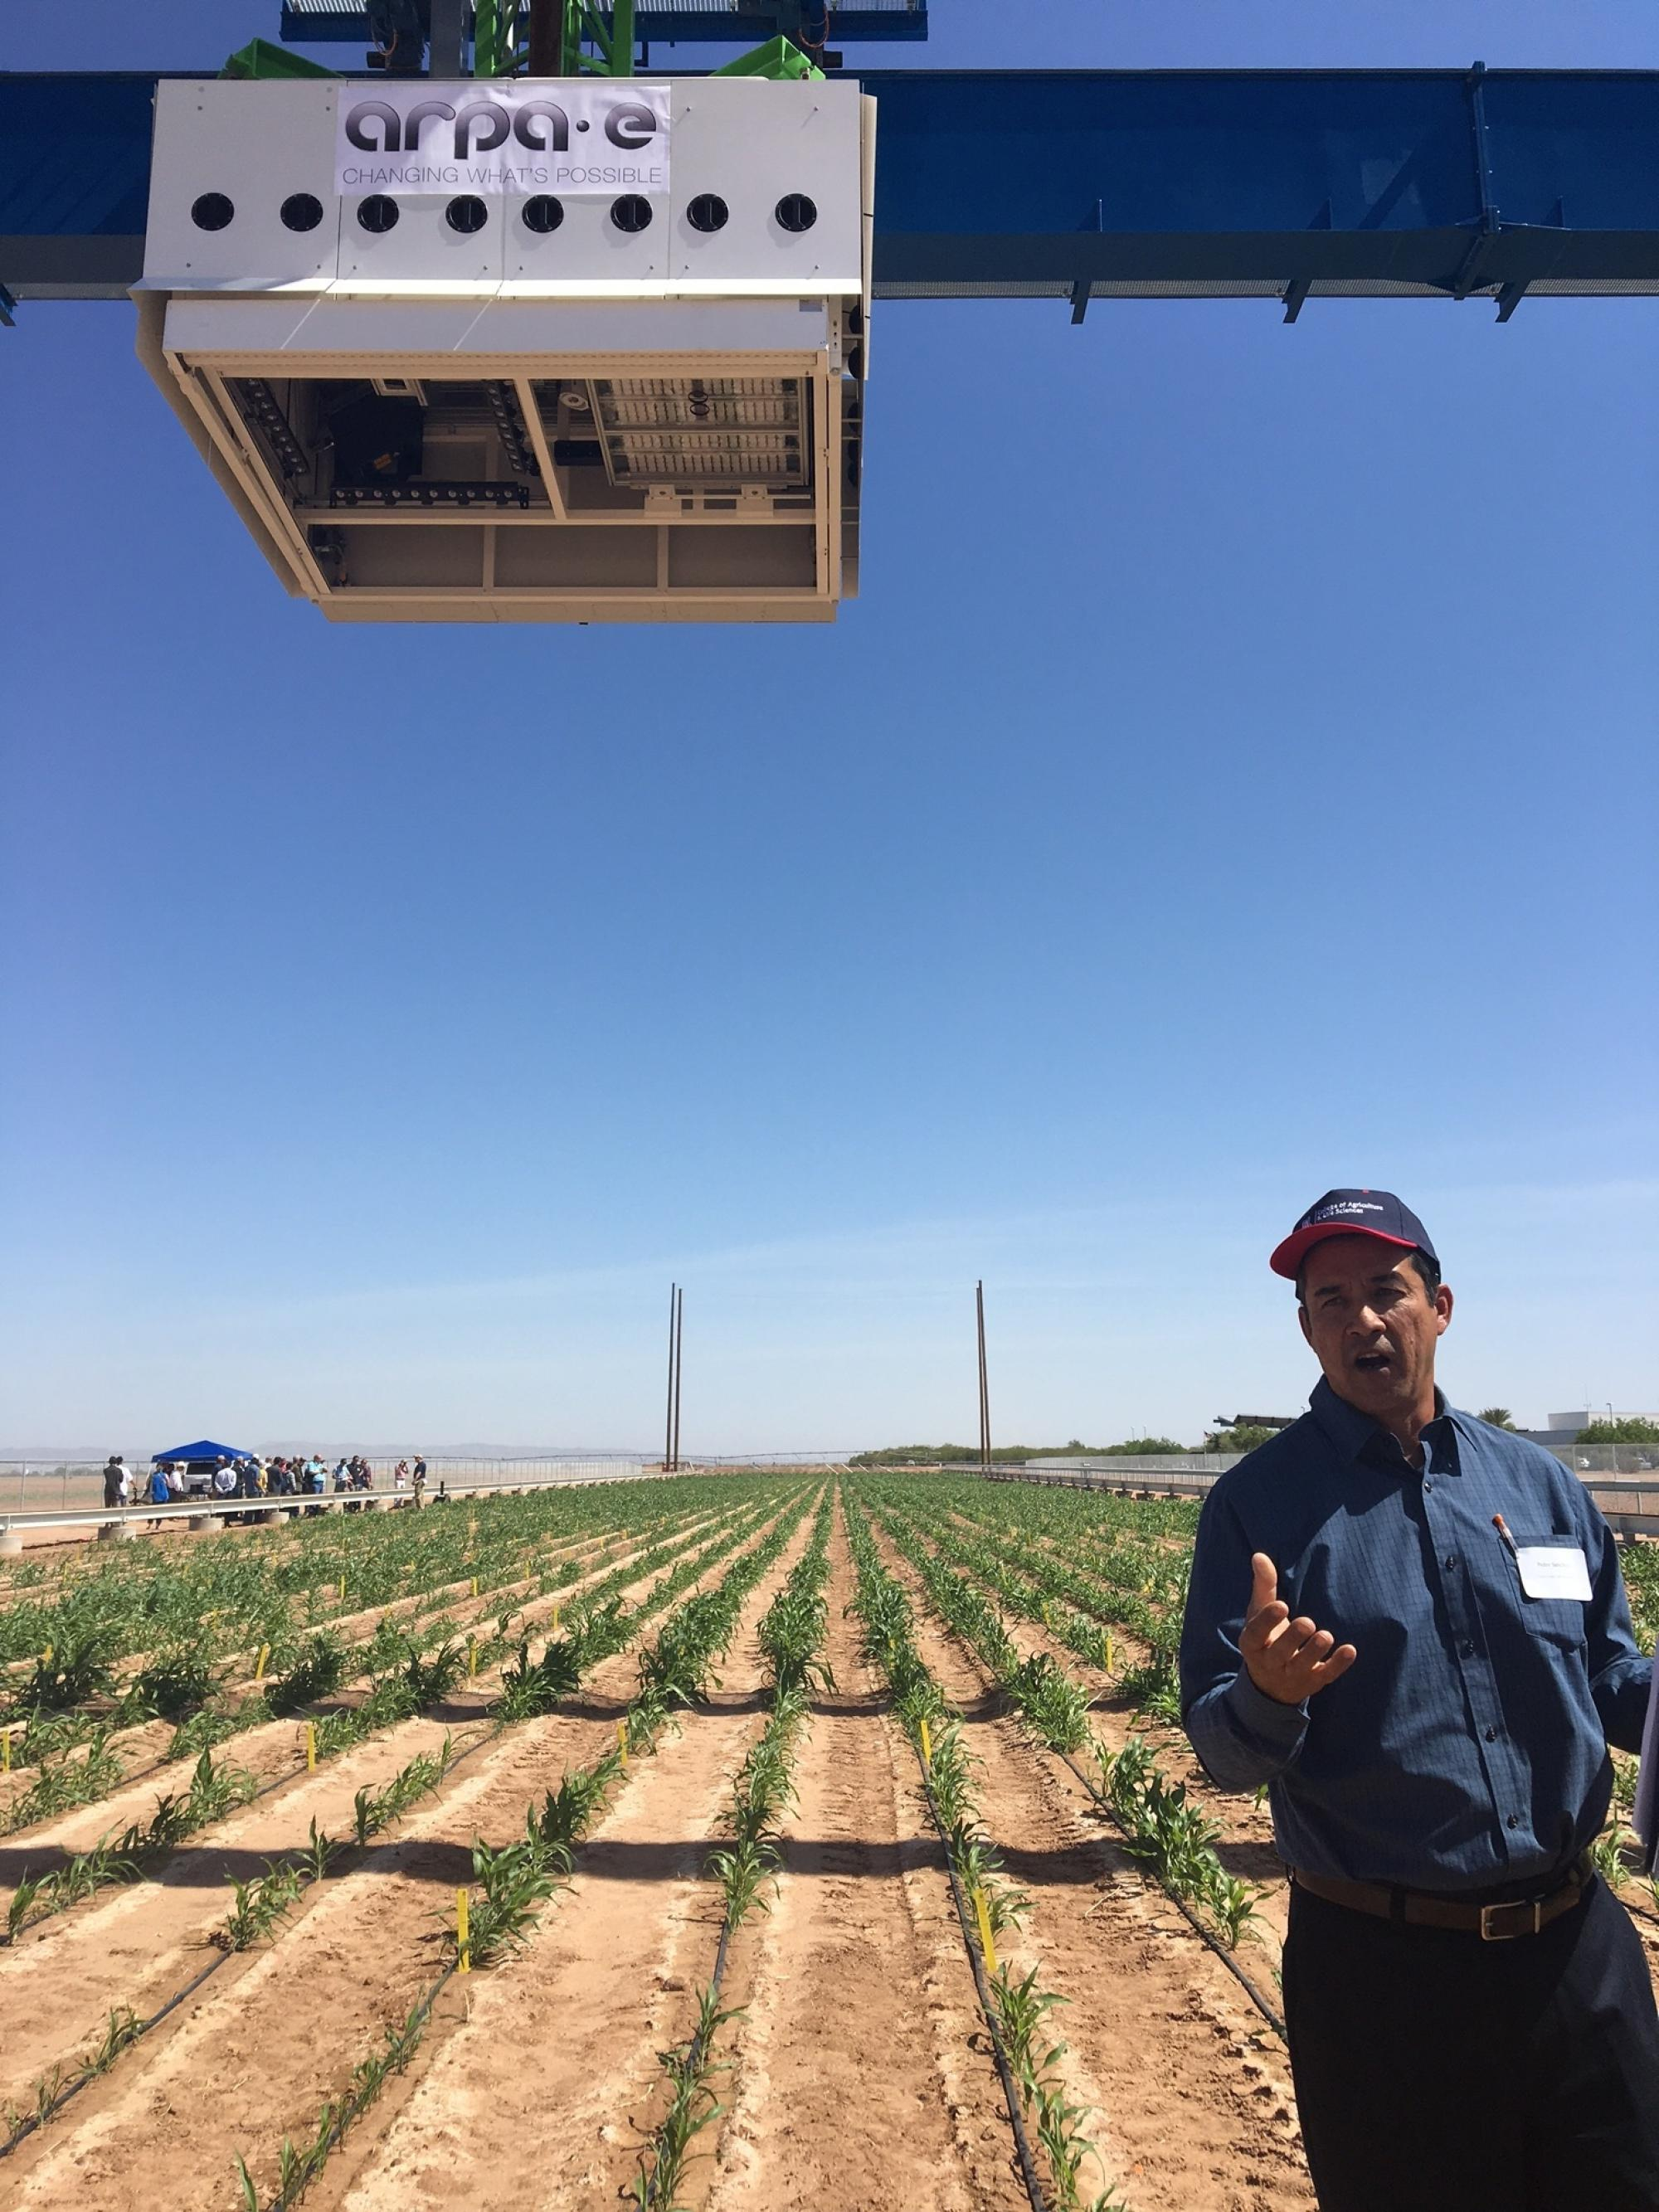 Pedro Andrade-Sanchez, precision agriculture specialist at the Maricopa Agriculture Center, discusses the operation and measurement capabilities of the scanalyzer.